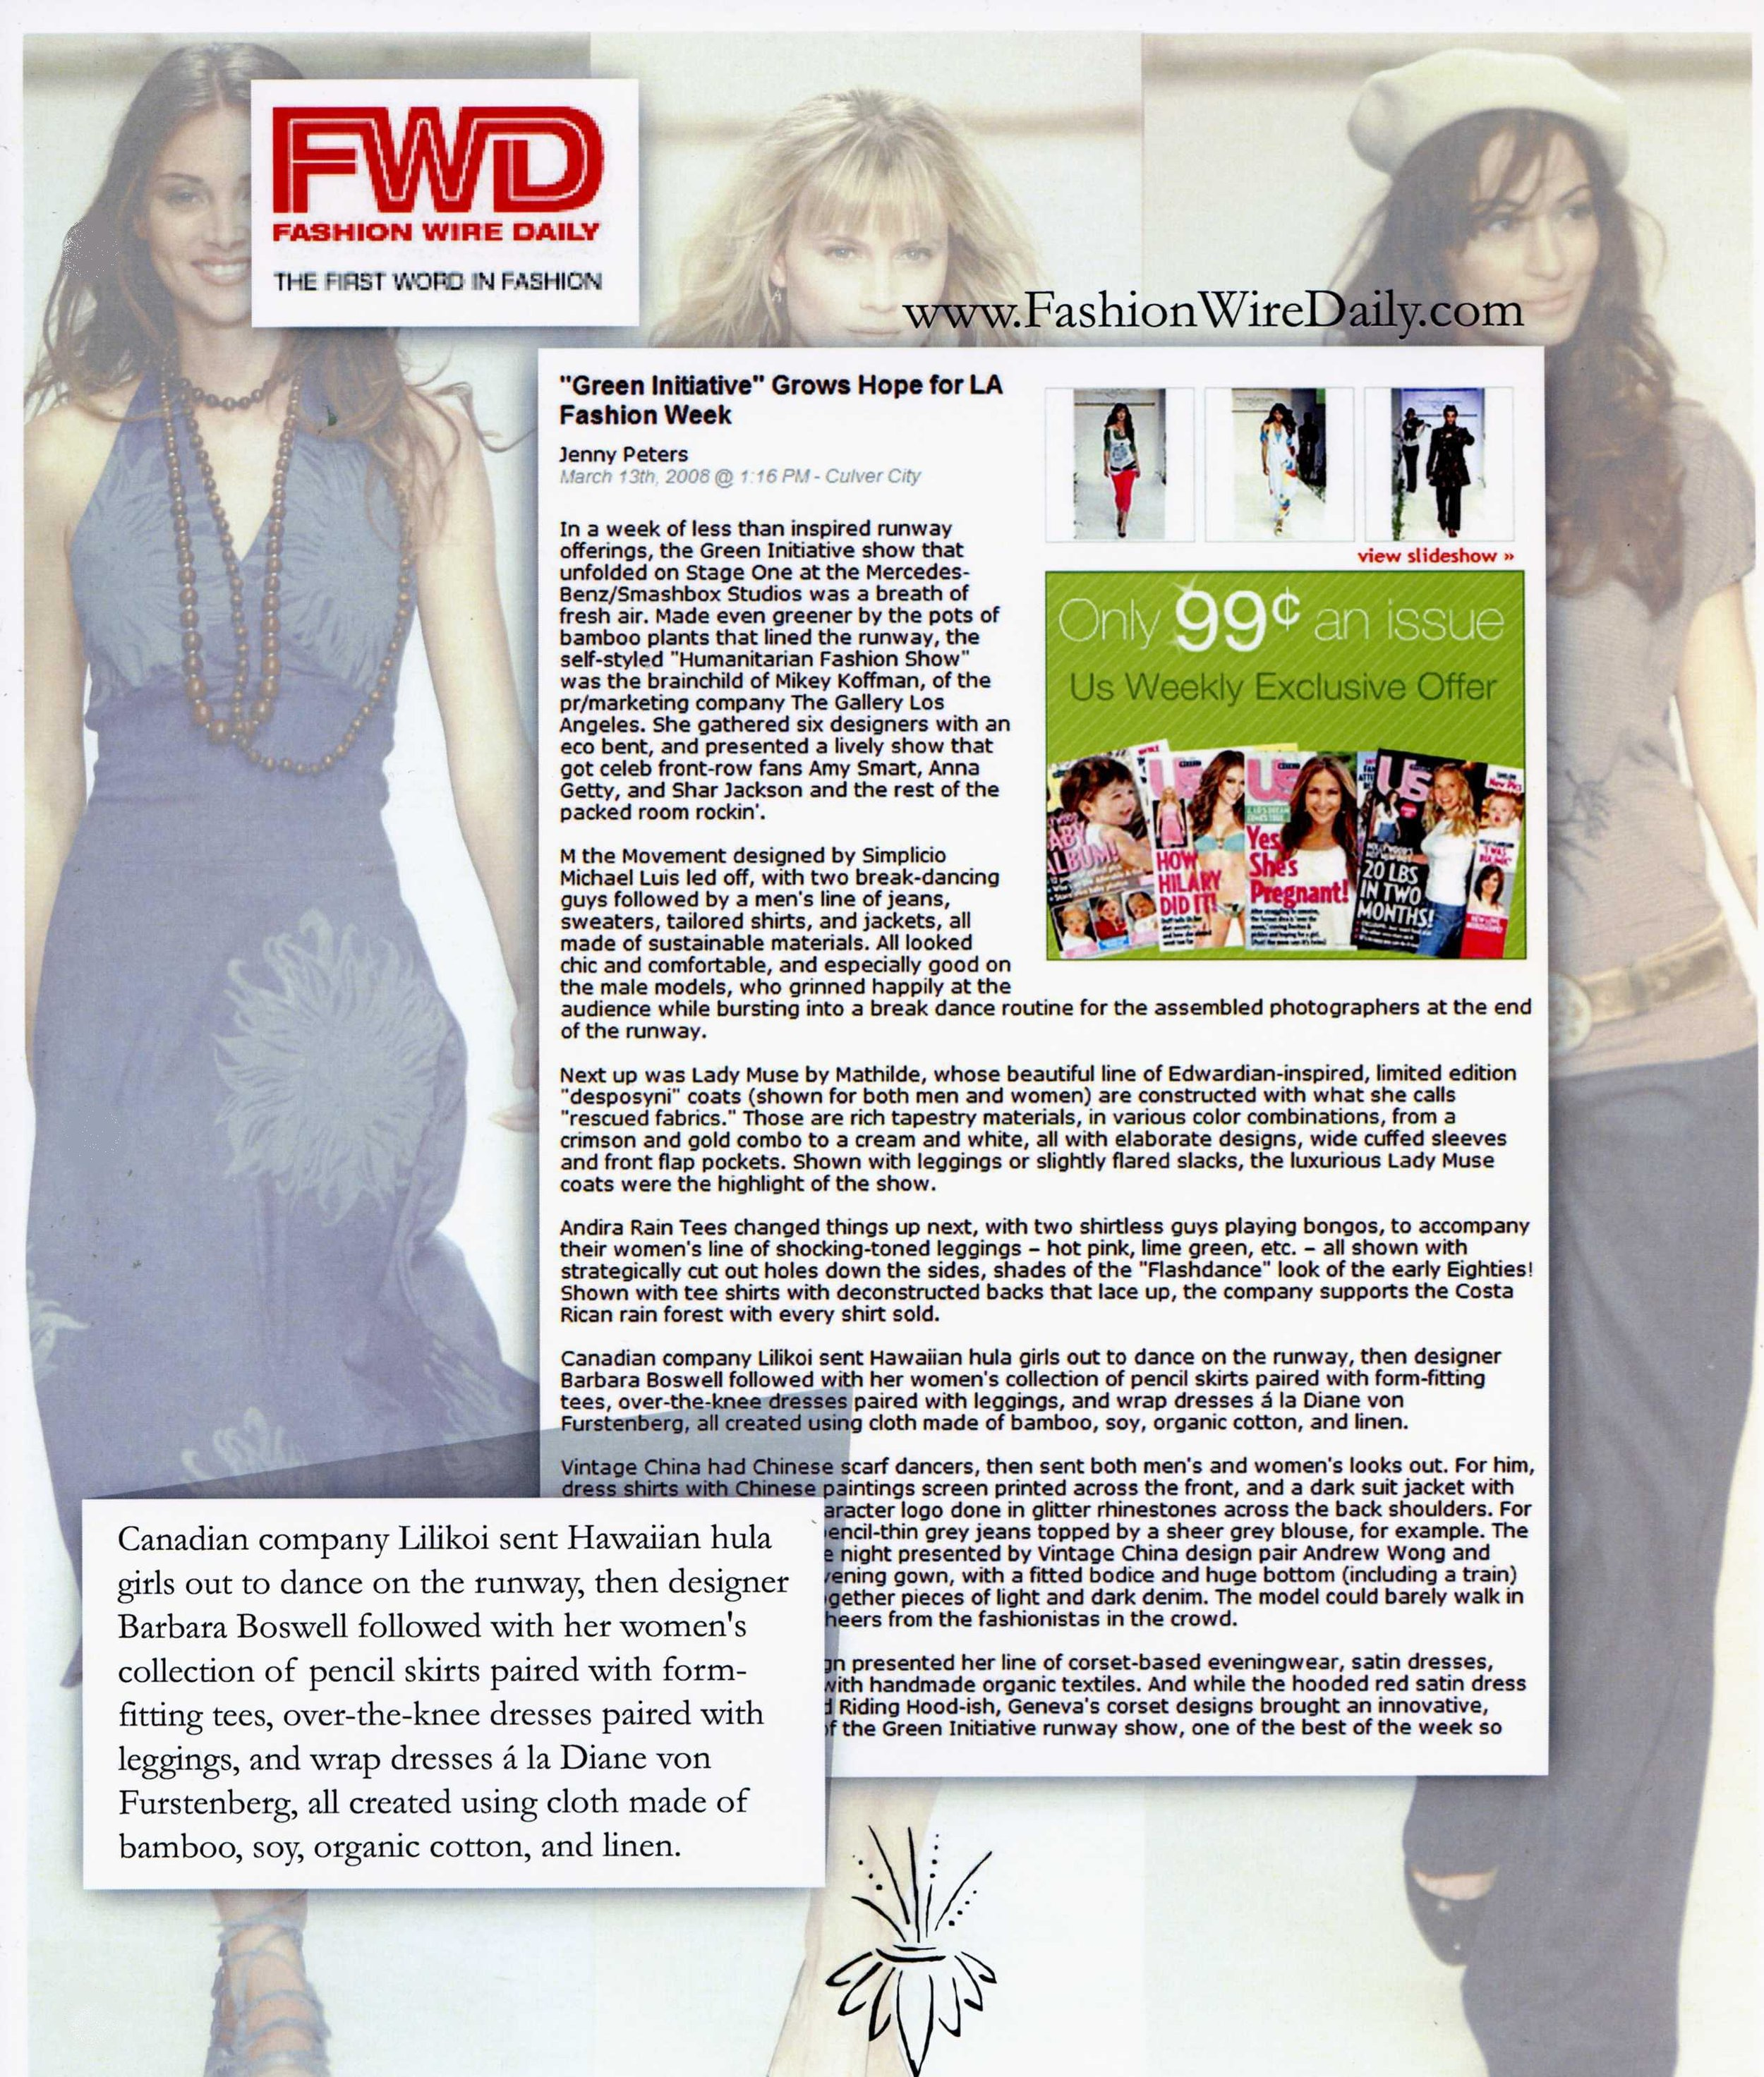 Fashion Wire Daily March 13 2008.jpg